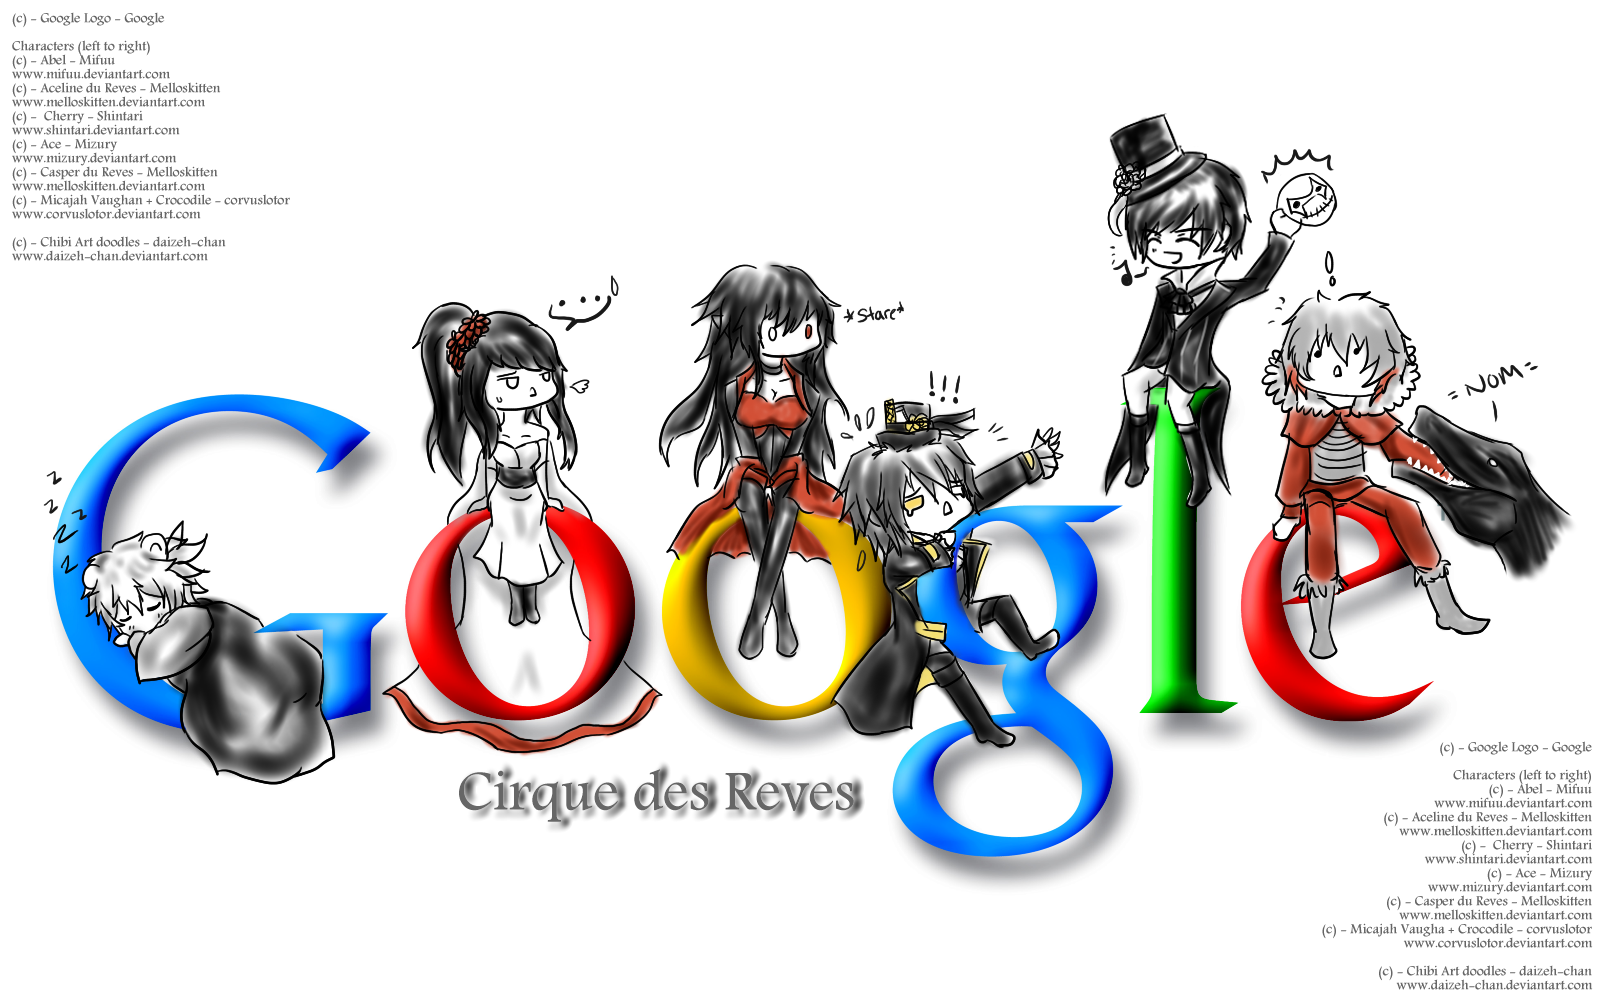 [CdR][Doodle] - Google Cirque des Reves by Daii--Chan